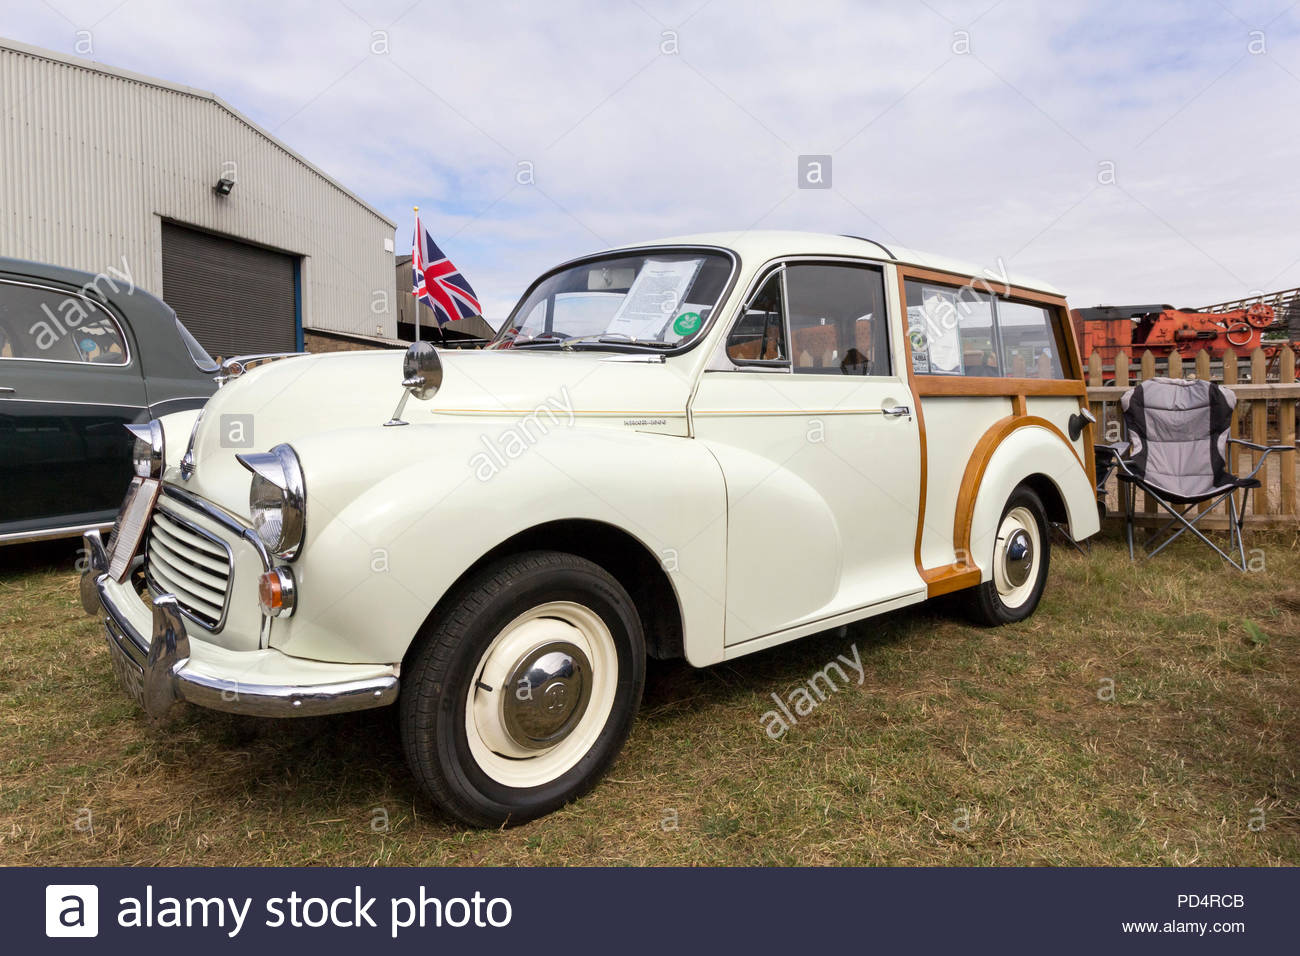 Austin Morris Minor 1000 Traveller on display at a classic car show - Stock Image